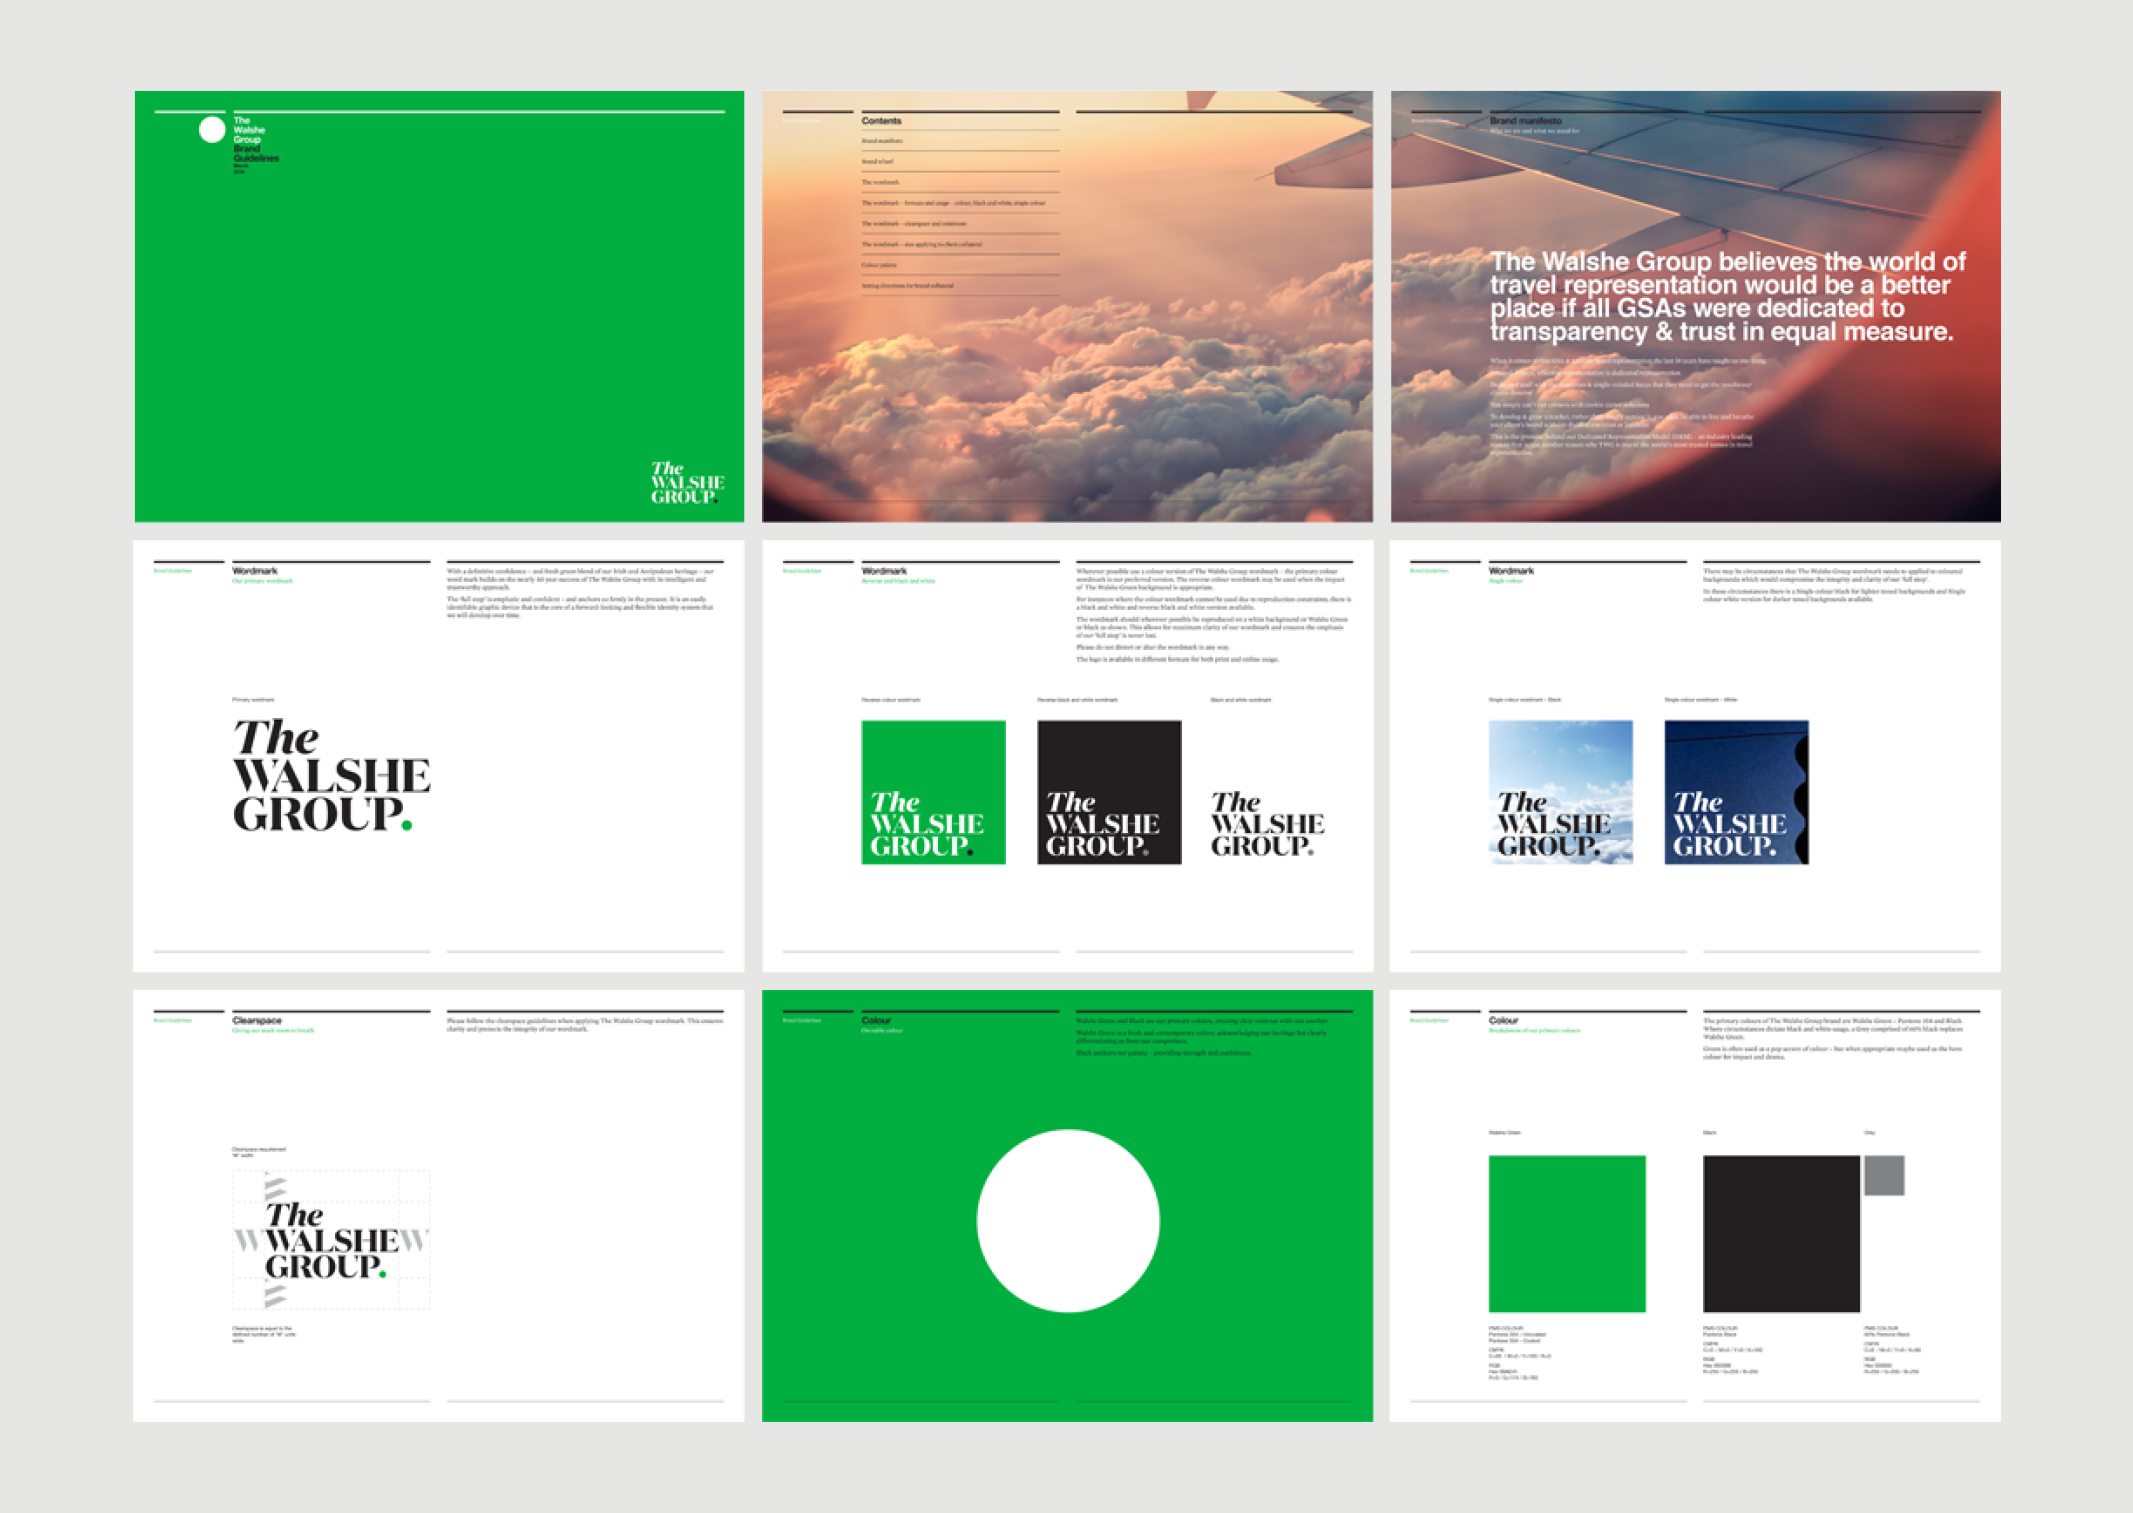 The Walshe Group Brand Guidelines – showing identity and colour usage